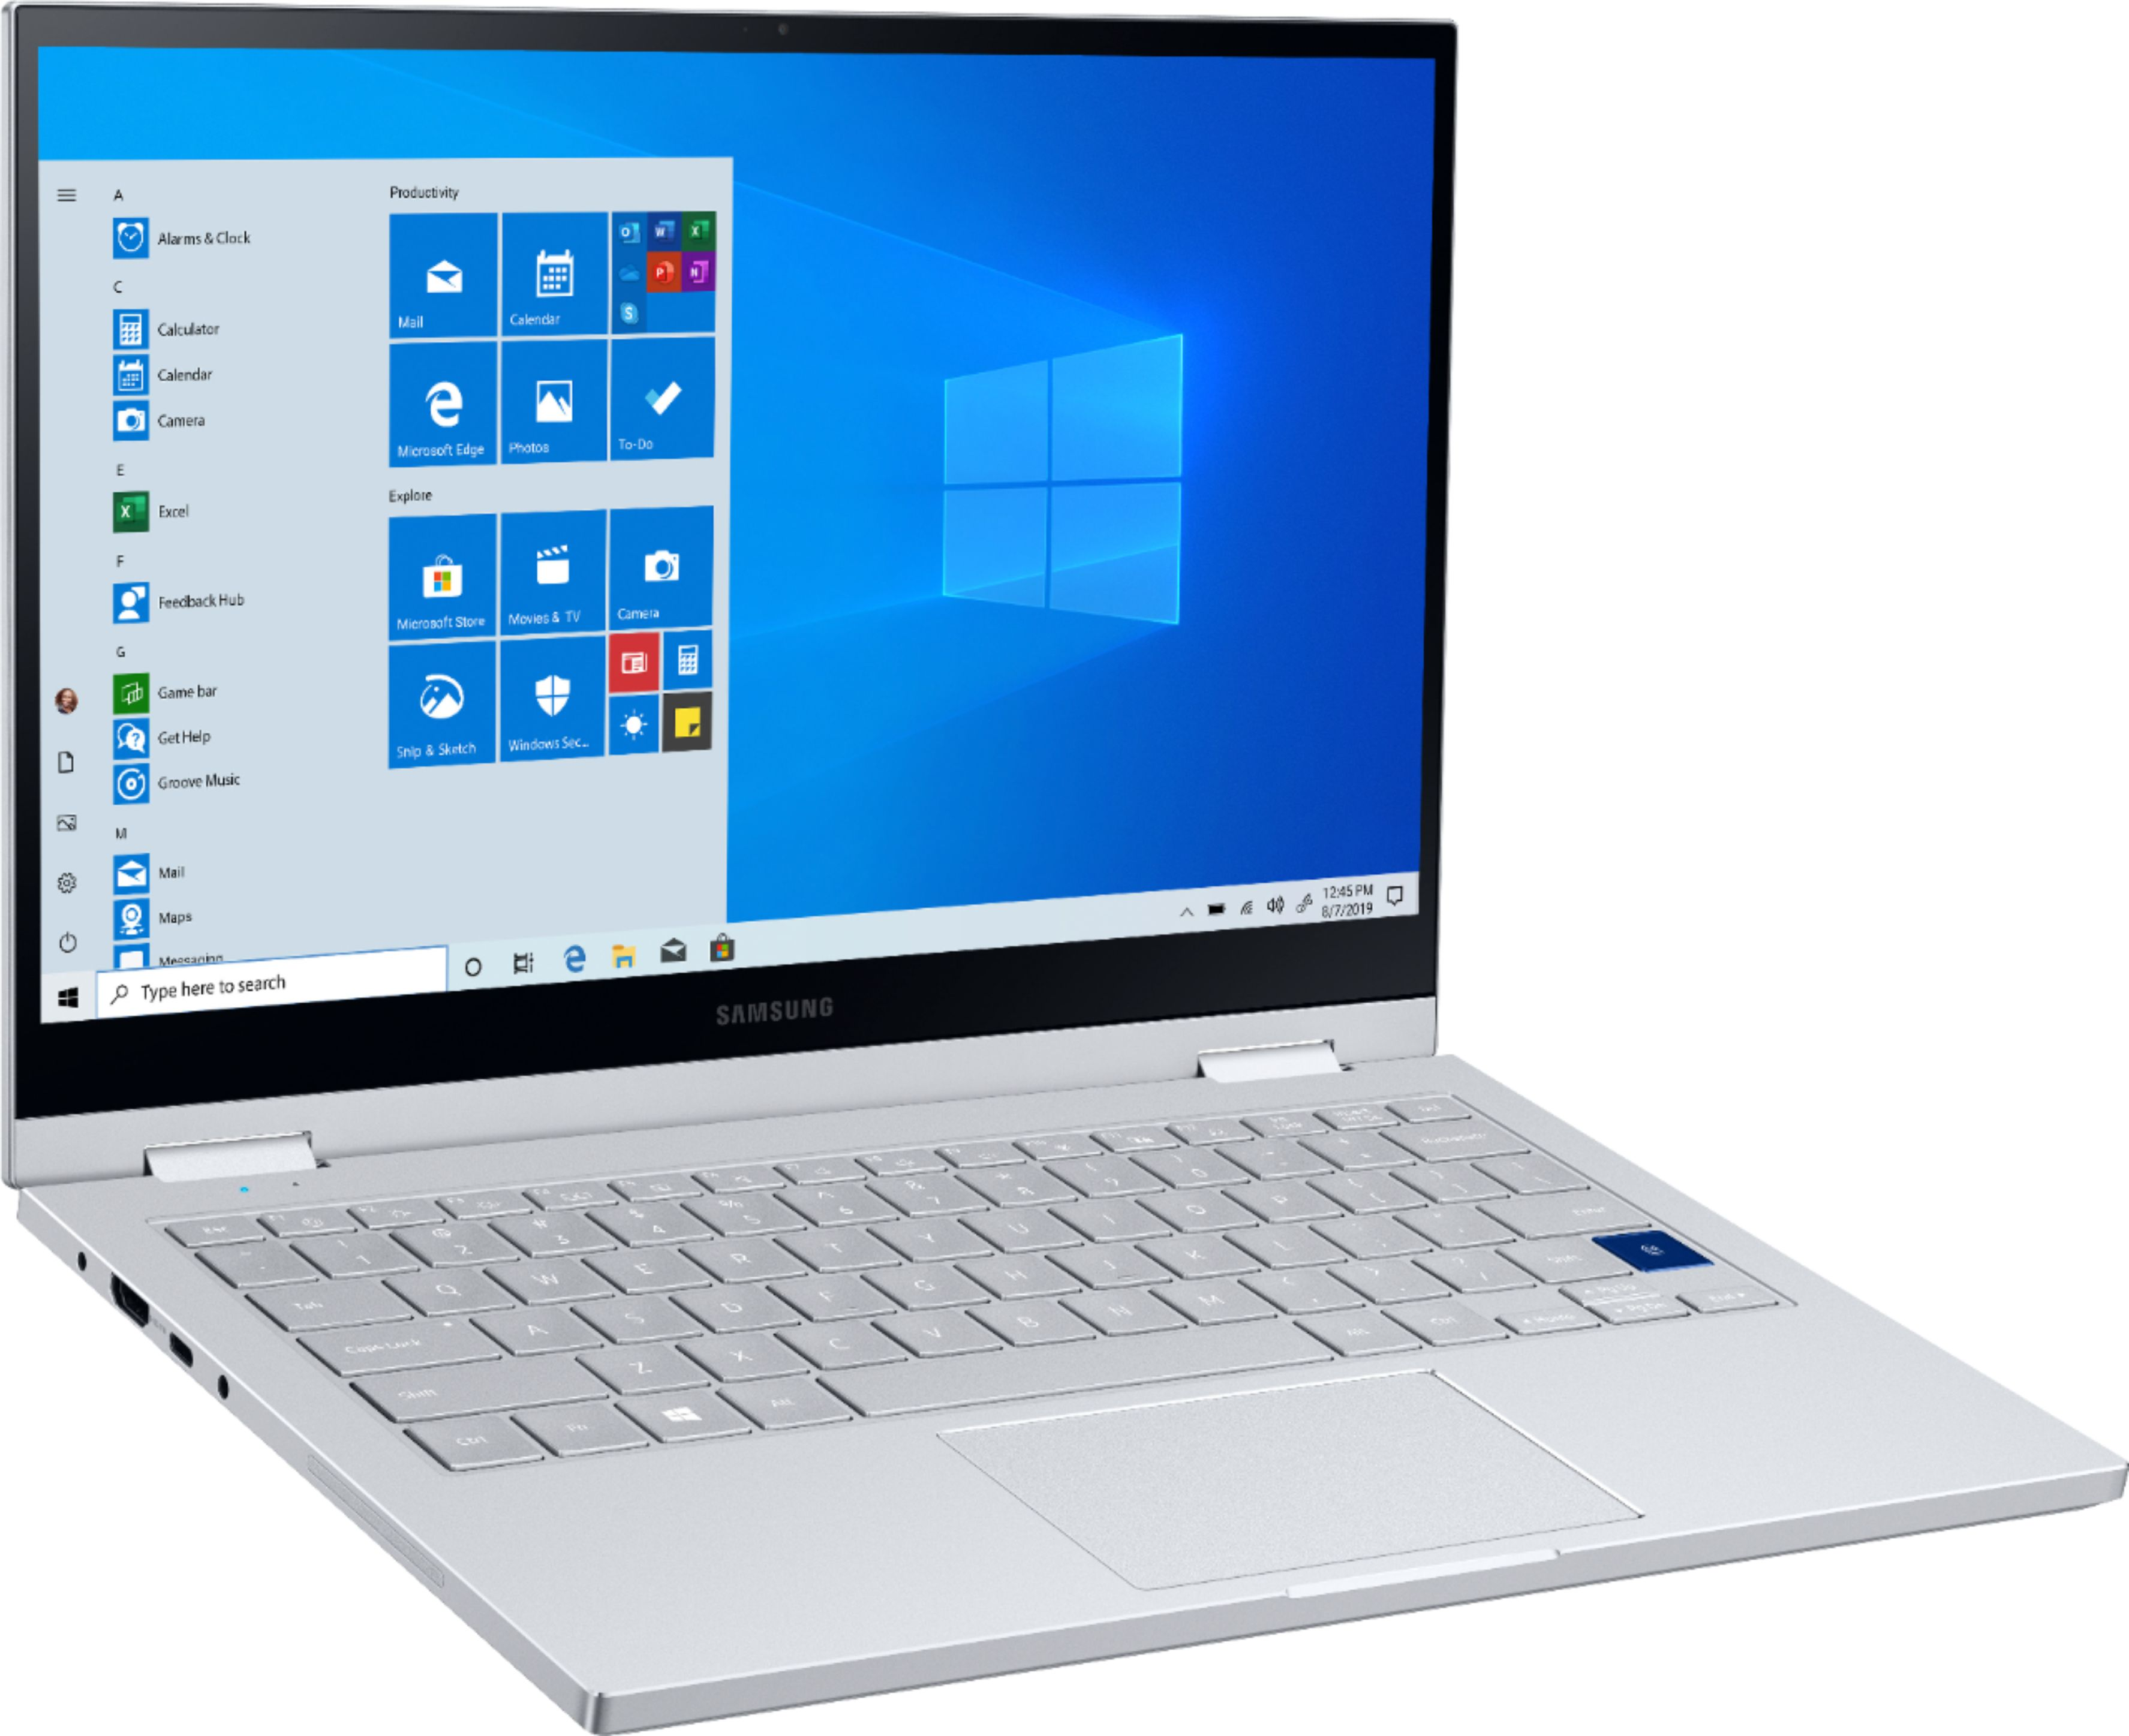 """Left Zoom. Samsung - Galaxy Book Flex Alpha 2-in-1 13.3"""" QLED Touch-Screen Laptop - Intel Core i5 - 8GB Memory - 256GB SSD - Royal Silver."""